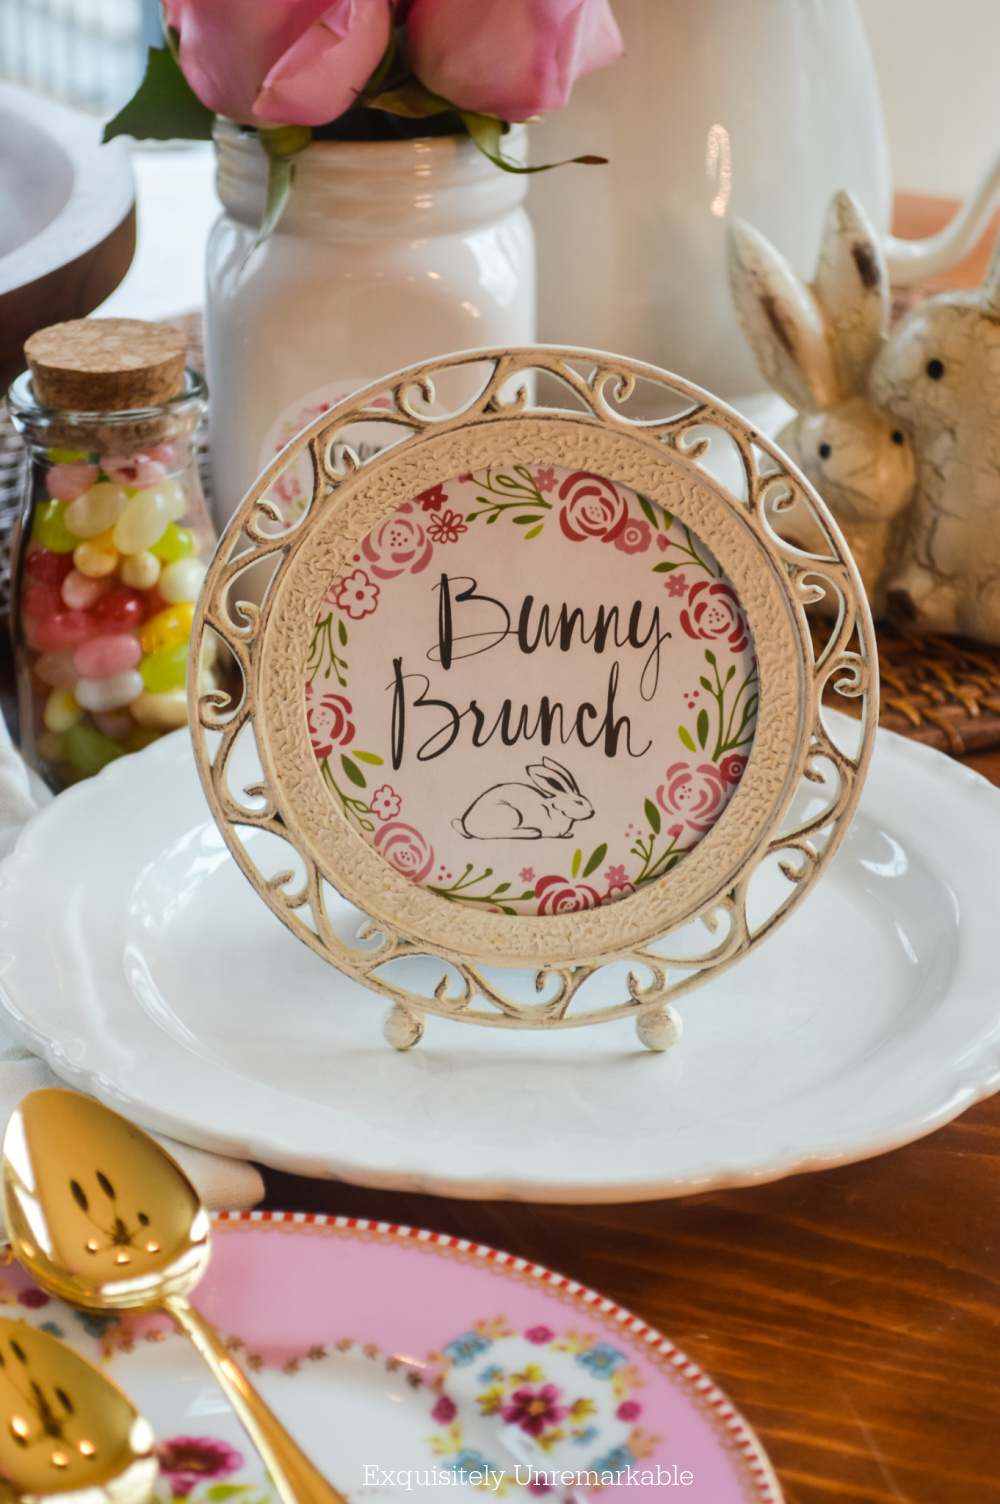 Bunny Brunch Table Setting